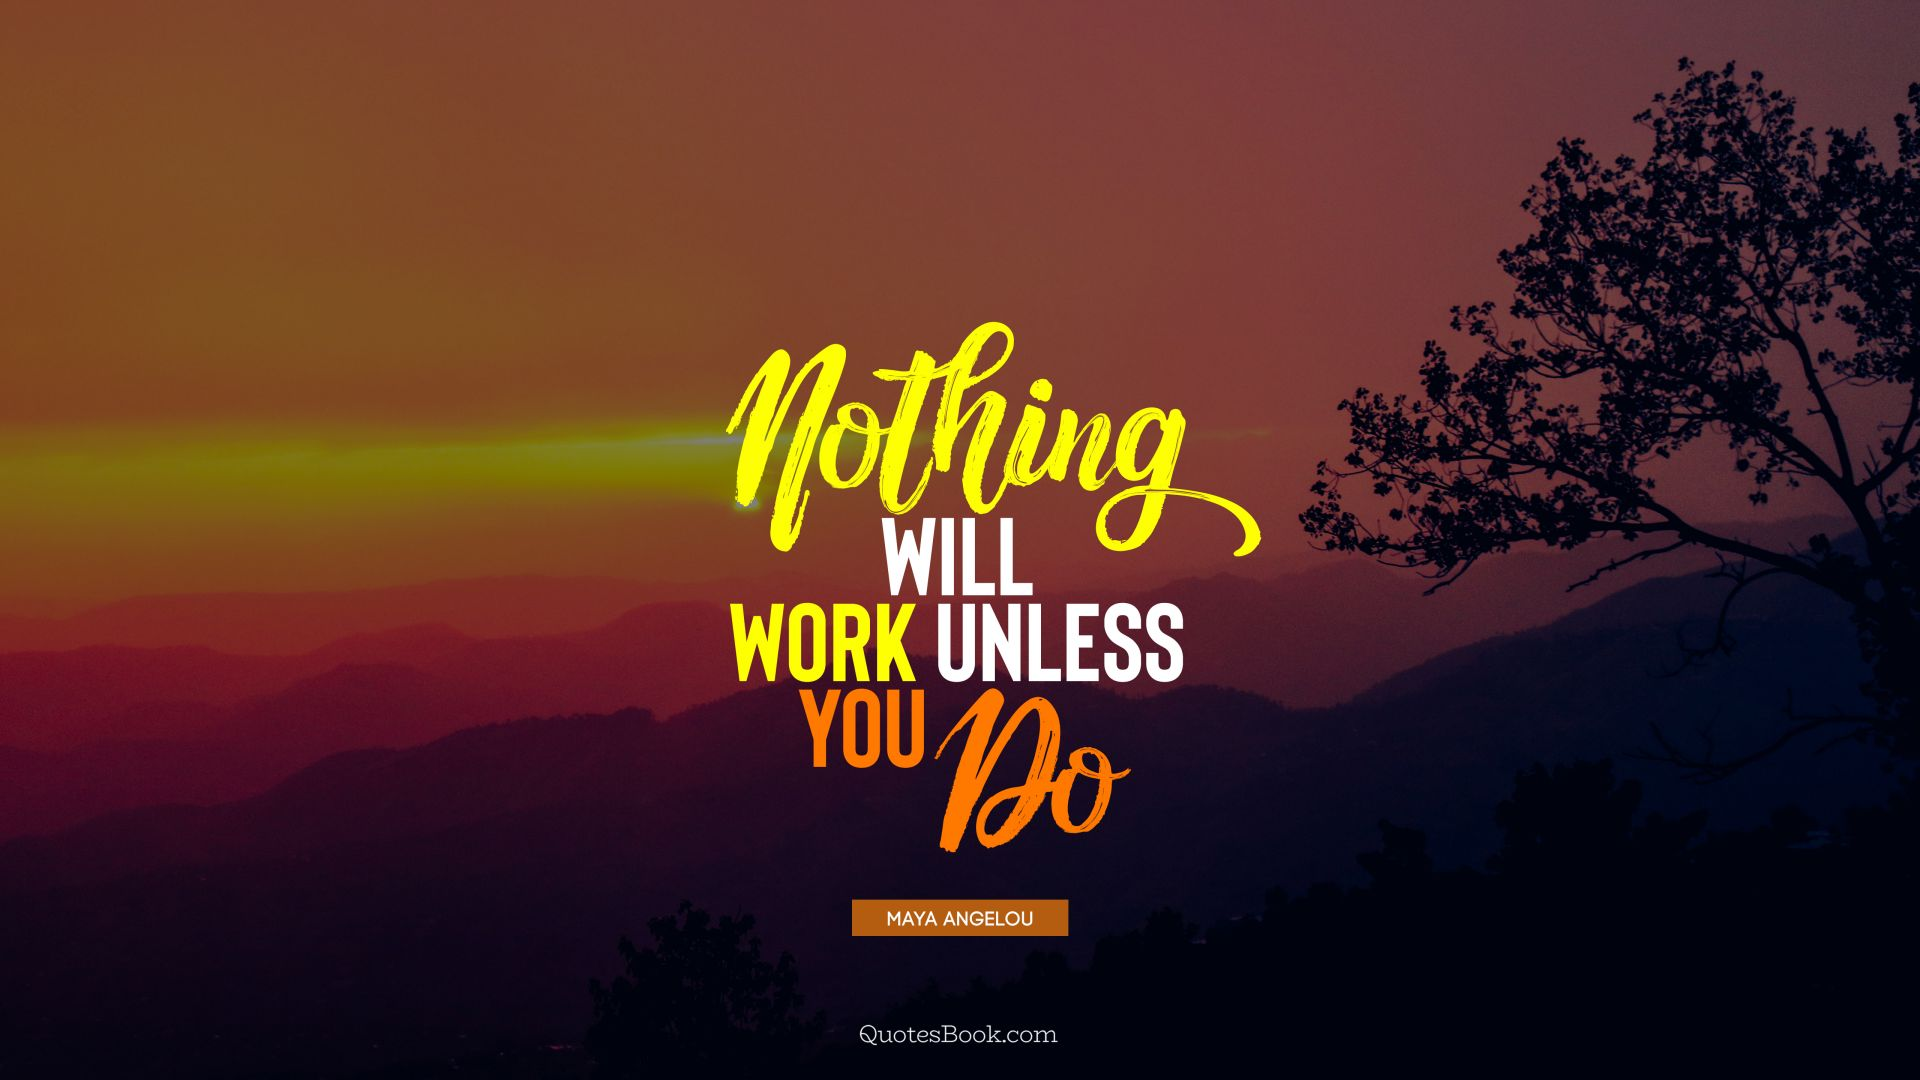 Nothing will work unless you do. - Quote by Maya Angelou